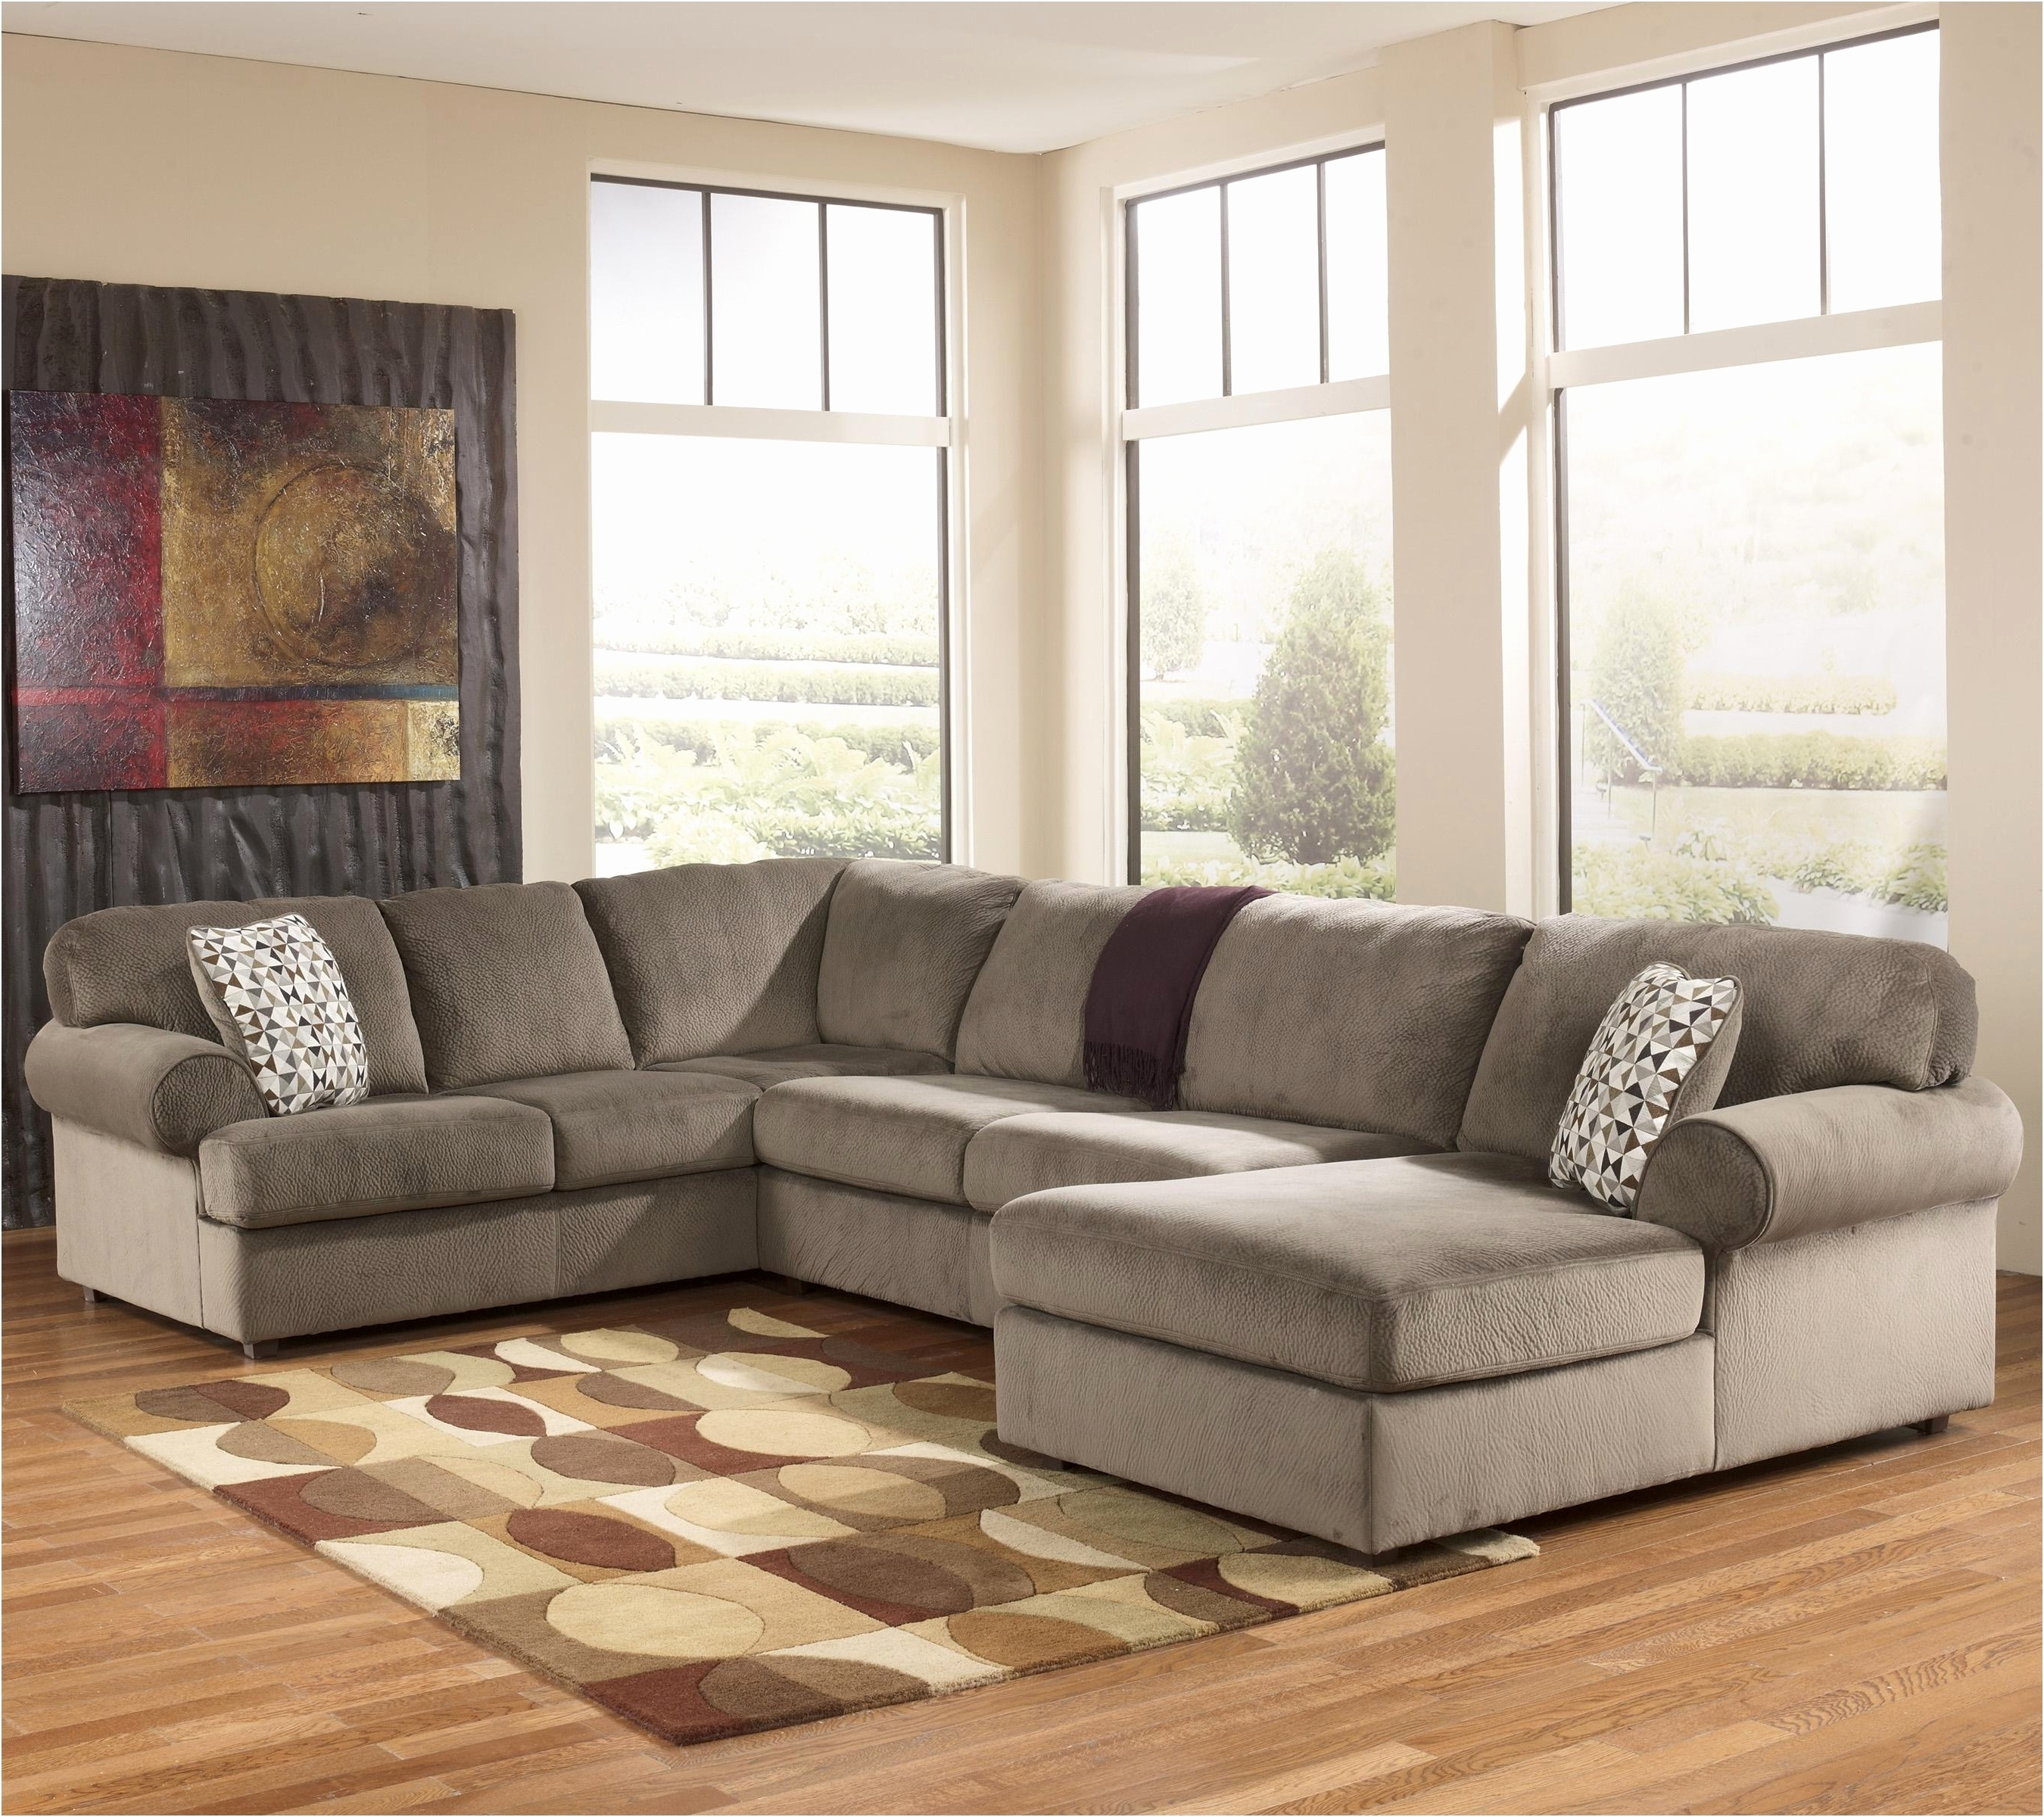 Famous Duluth Mn Sectional Sofas Inside Sectional Sofas Mn (View 9 of 20)